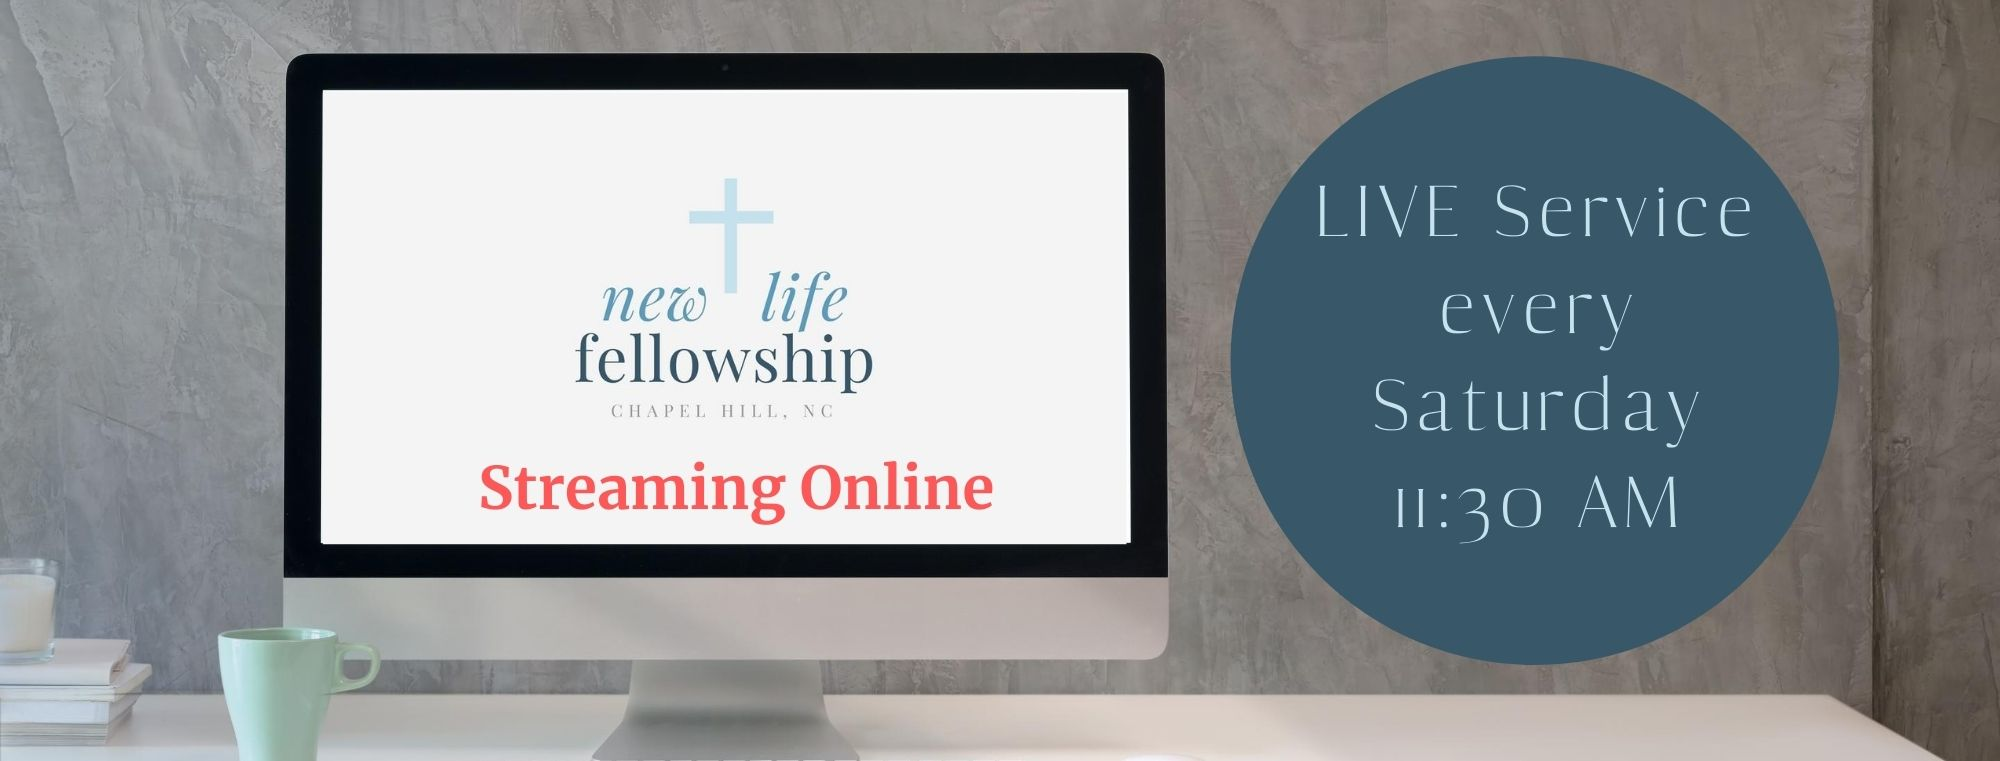 New Life Fellowship Church | Chapel Hill